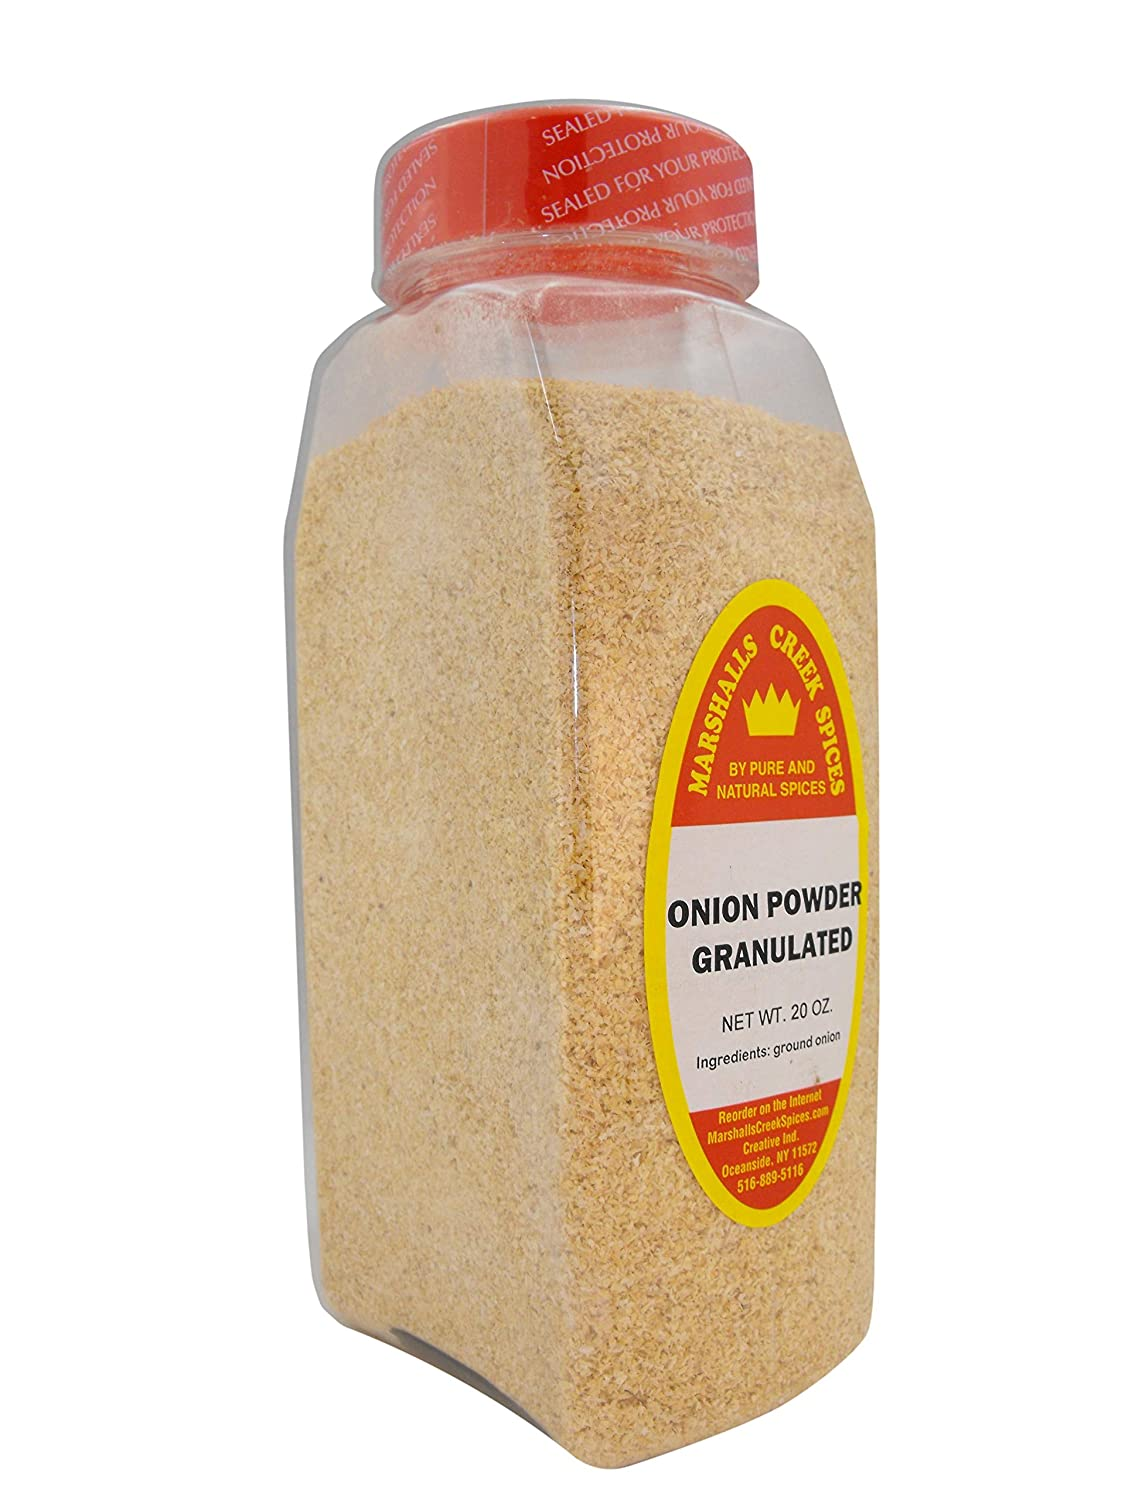 Excellence Marshall's Creek Spices Marshalls Spice Onion Co. Size Year-end gift XL